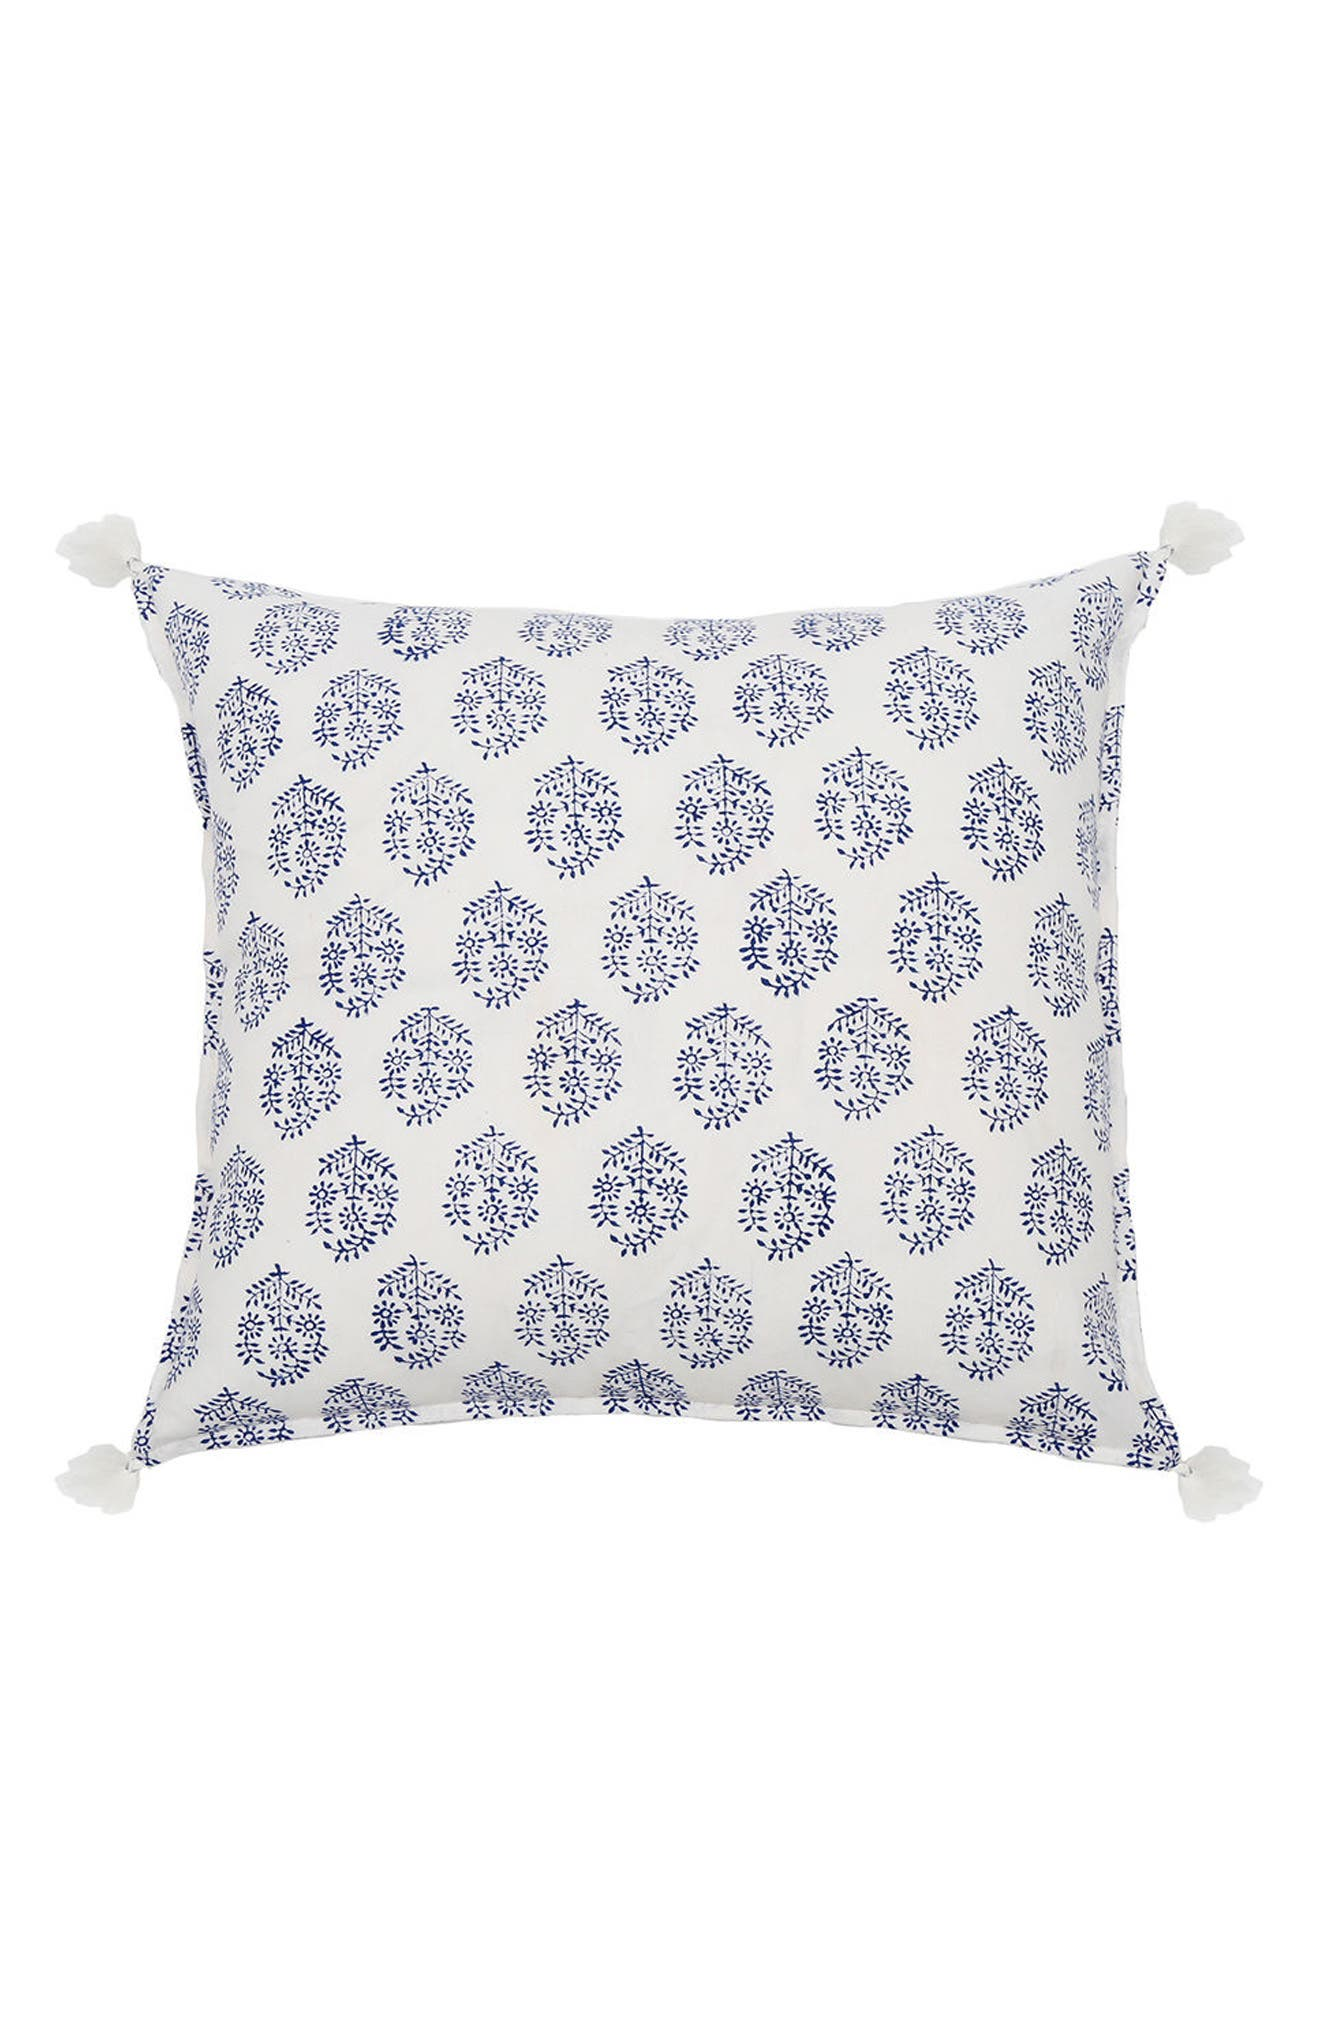 Fena Accent Pillow,                             Main thumbnail 1, color,                             400